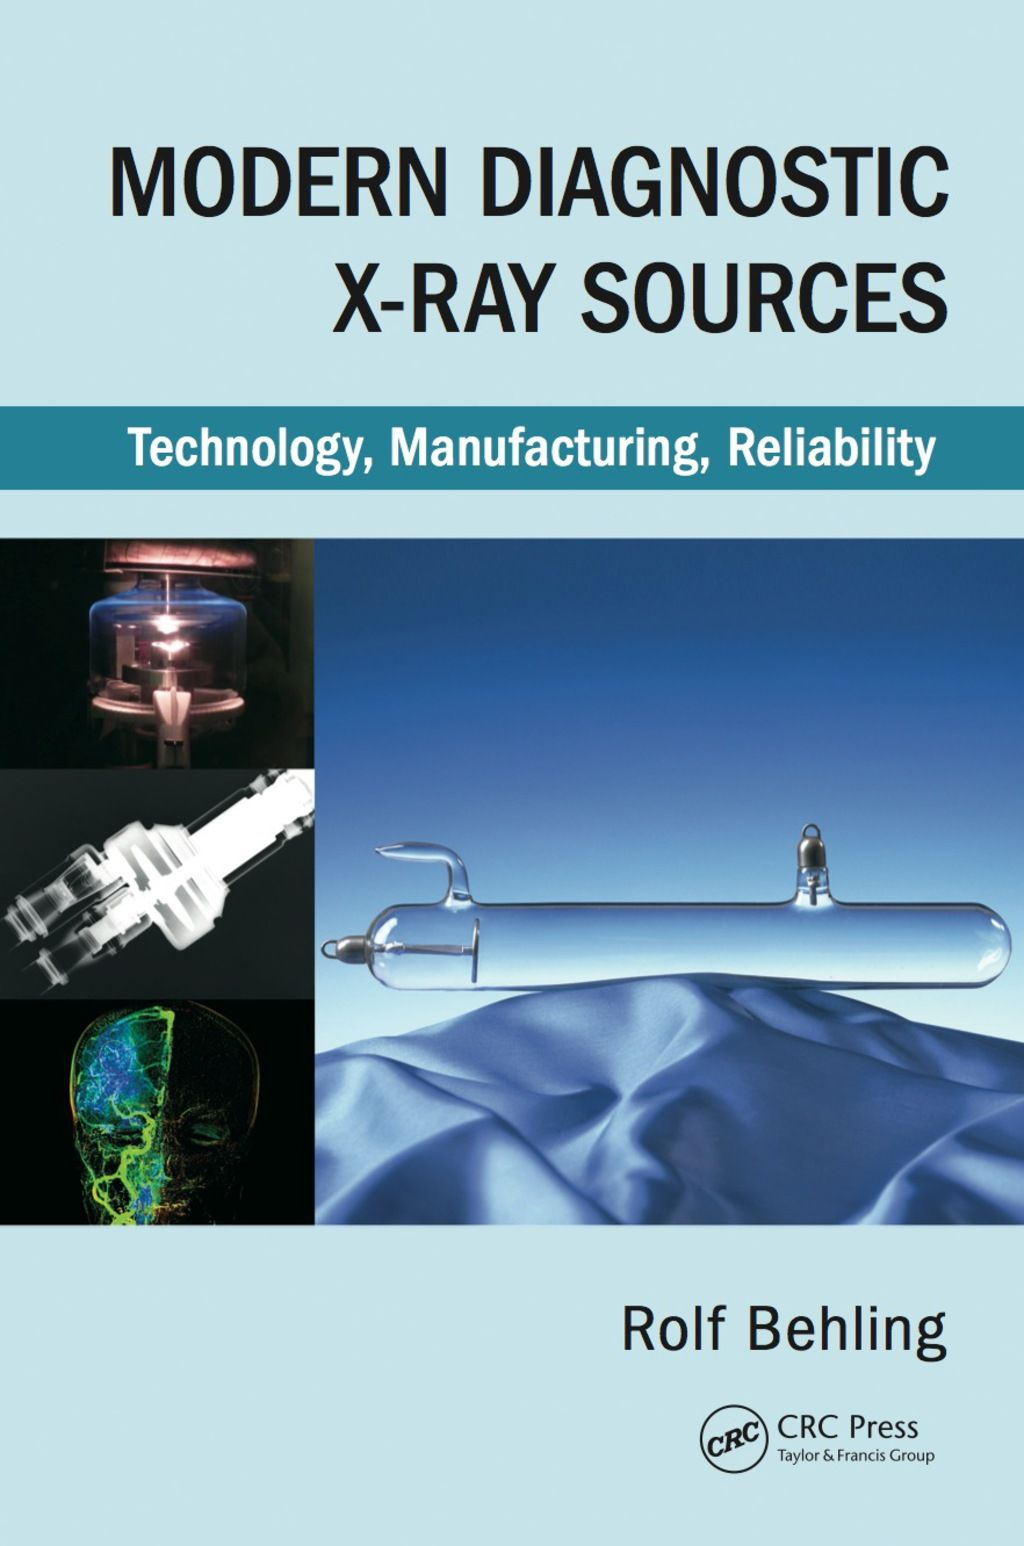 Modern Diagnostic XRay Sources (eBook Rental) in 2019